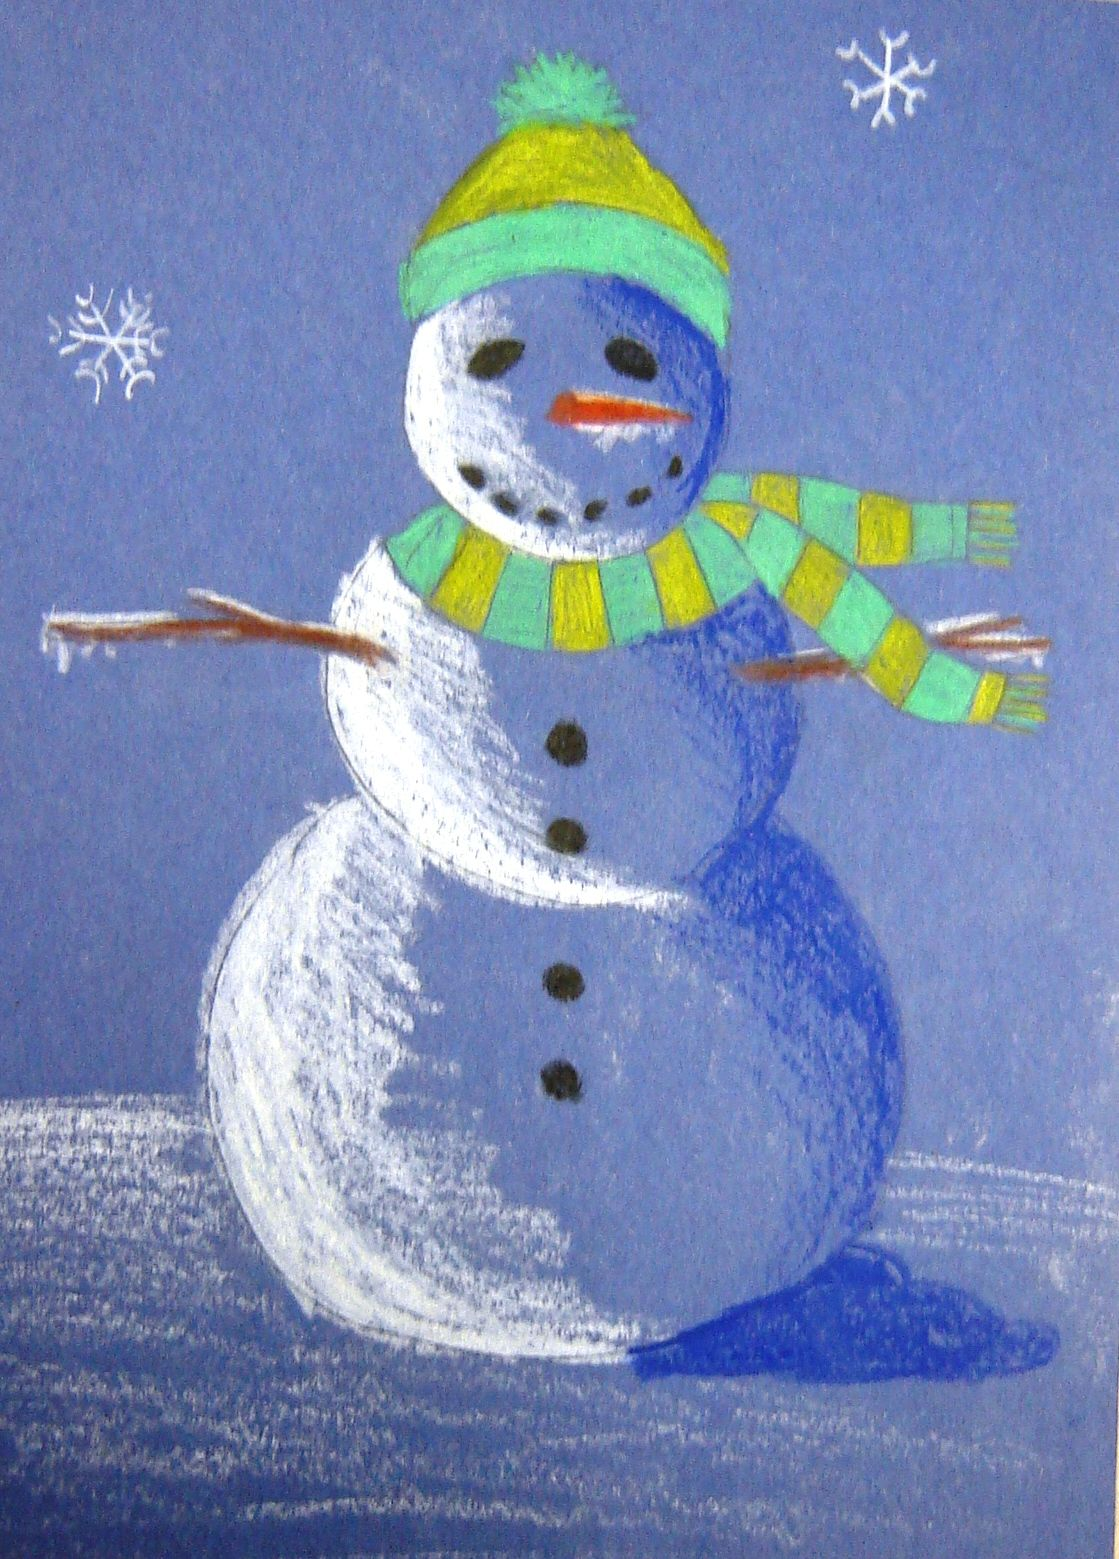 Snowman shading project on blue construction paper